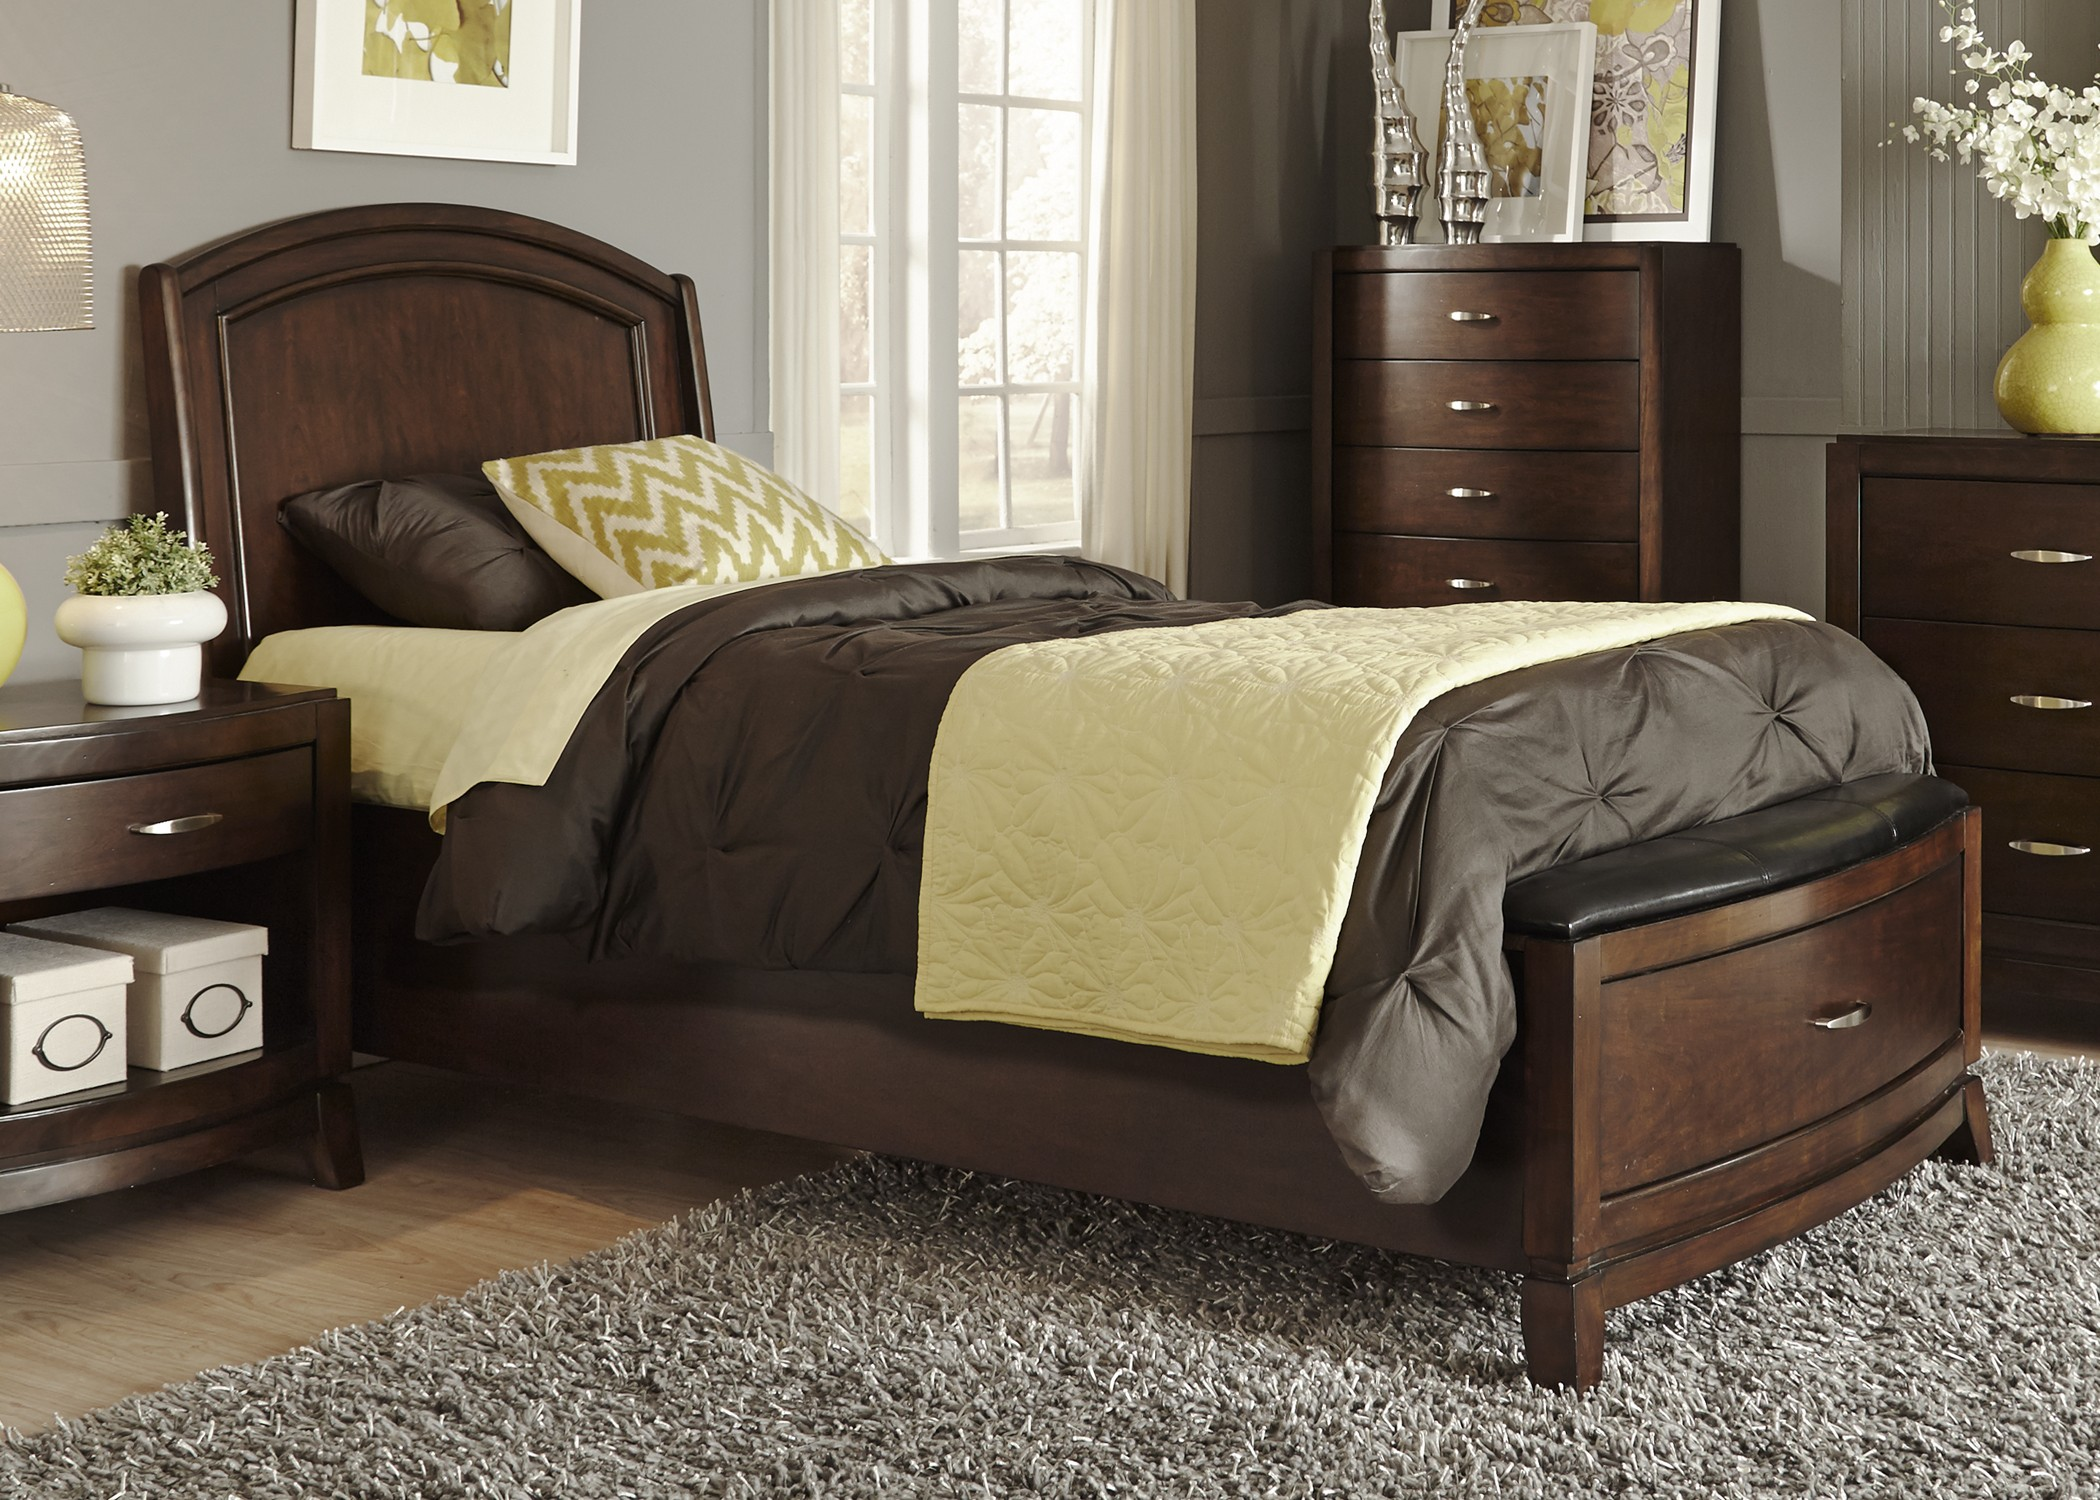 Avalon truffle youth leather storage bedroom set from - Youth bedroom furniture with storage ...